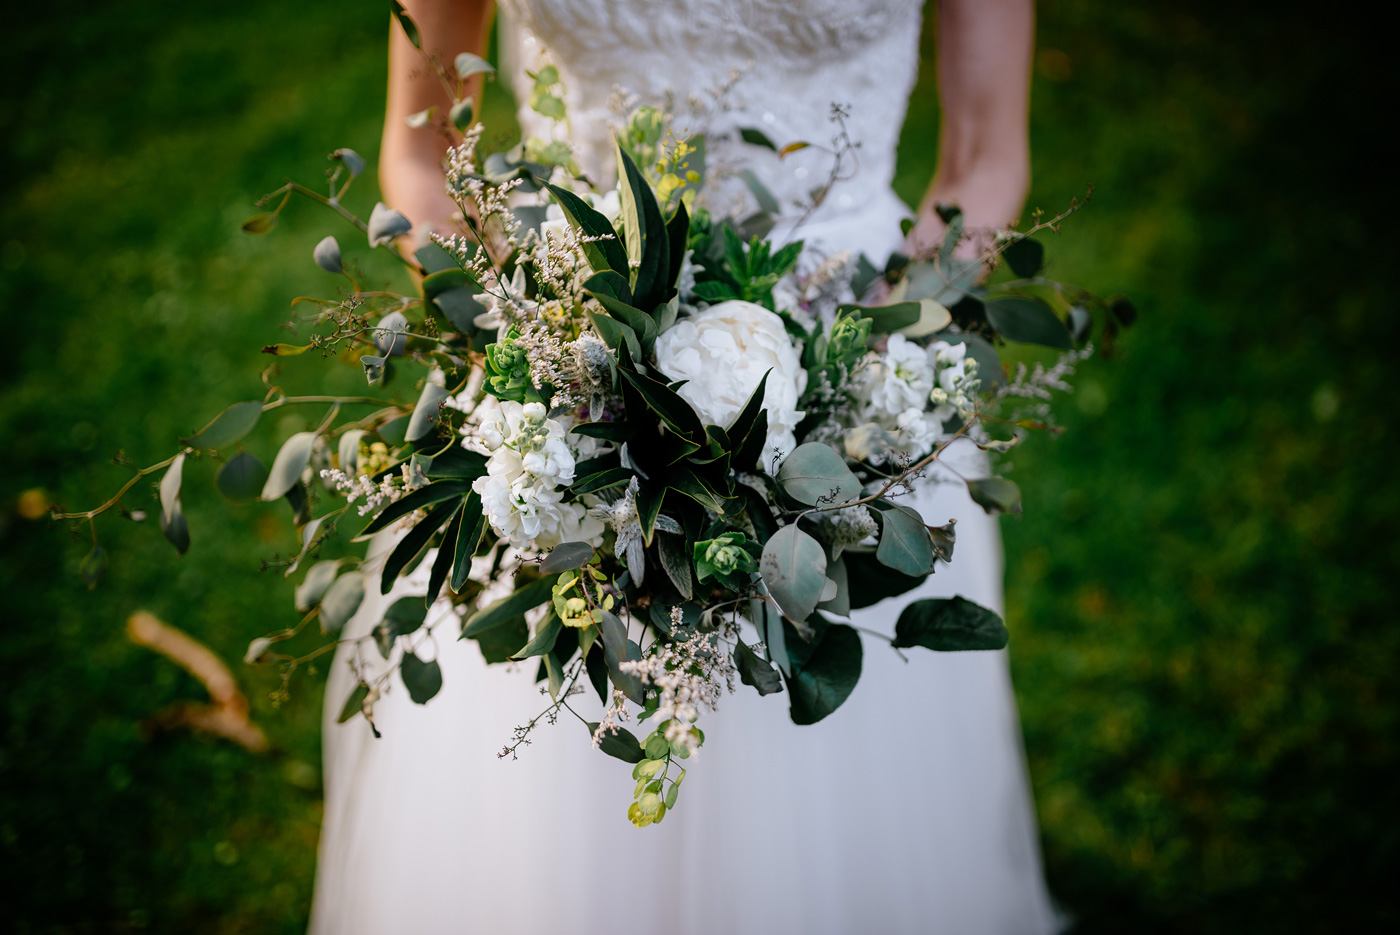 west farm flowers lewisburg wv wedding bridal bouquet